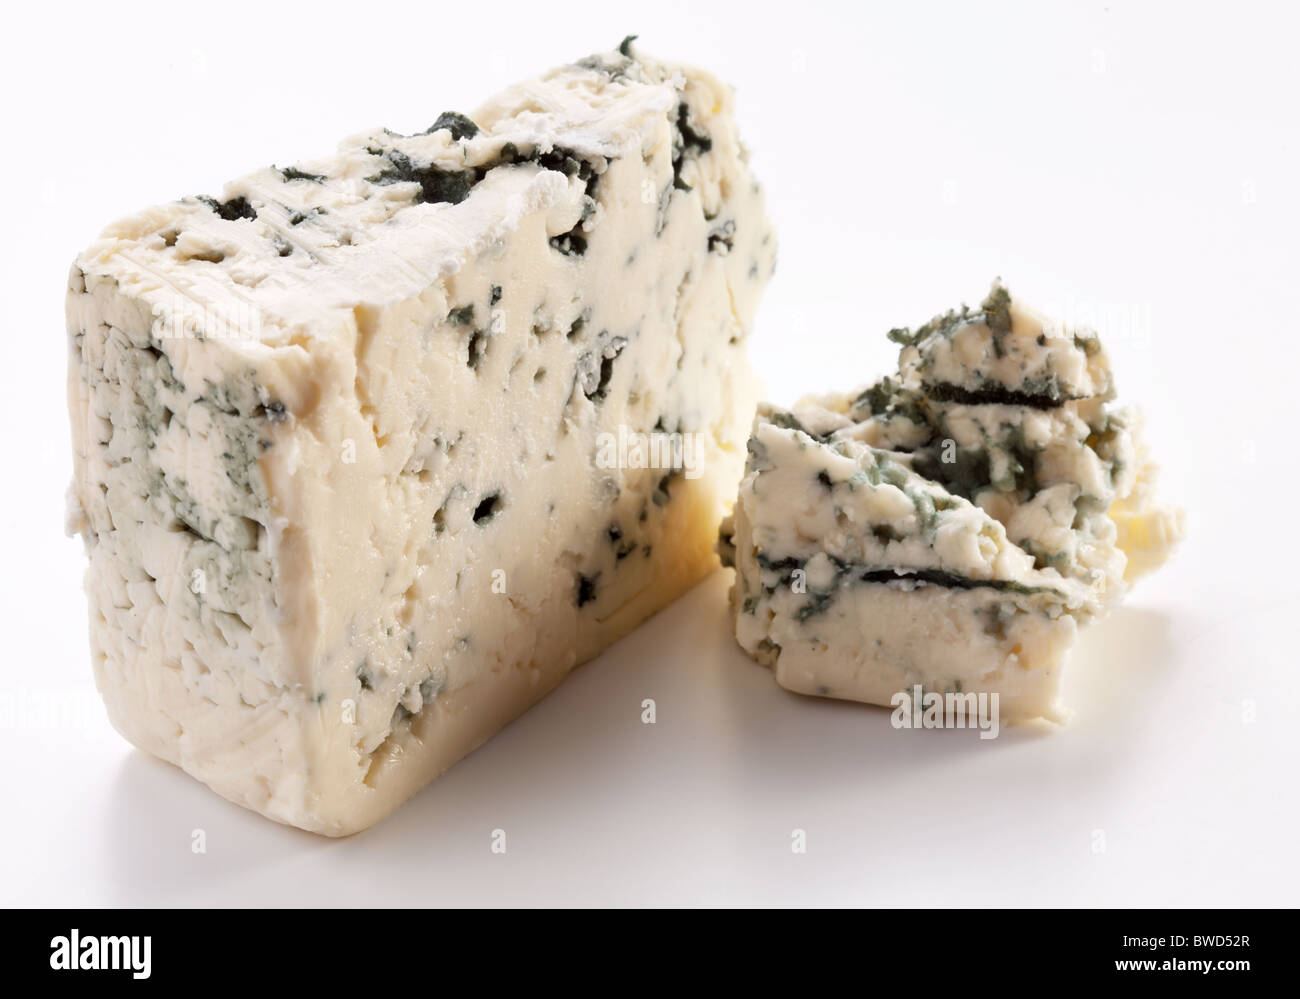 Pieces of blue cheese on a white background. - Stock Image